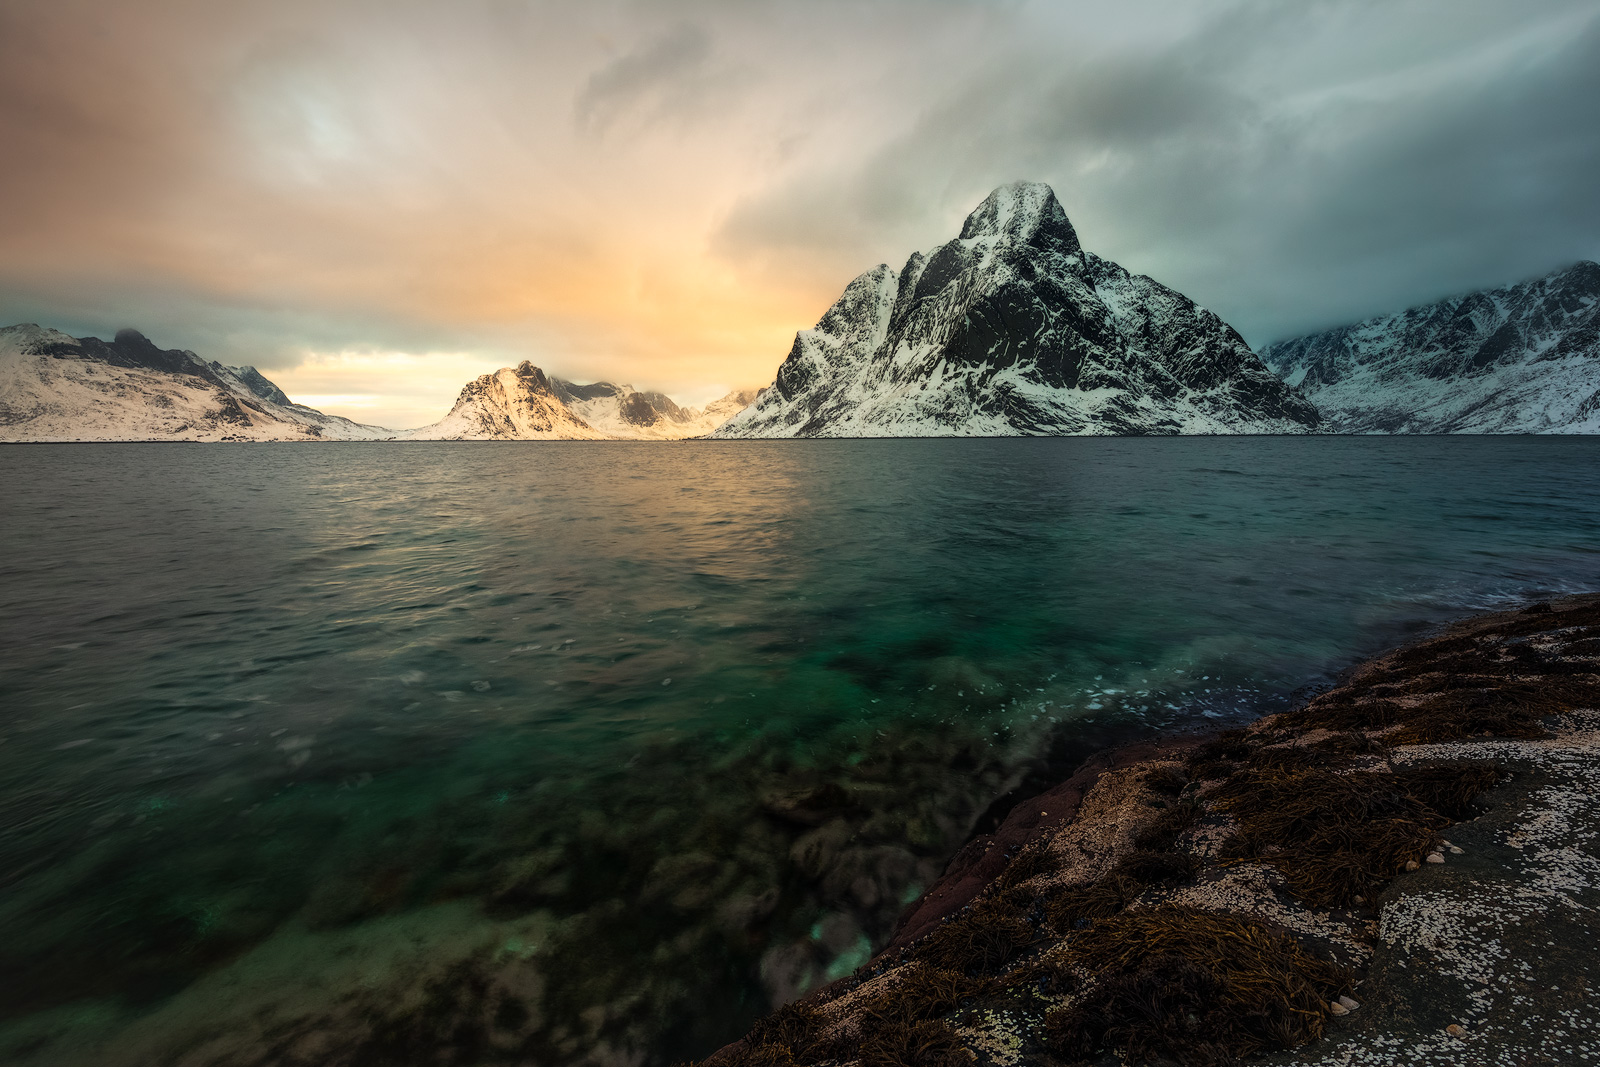 2017, beach, beautiful, coast, europe, evening, ice, lake, landscape, lofoten, majestic, moskenesøy, mountain, mountain range, norway, olstind, peak, scandinavia, scenic, seascape, snow, snowy, sunset